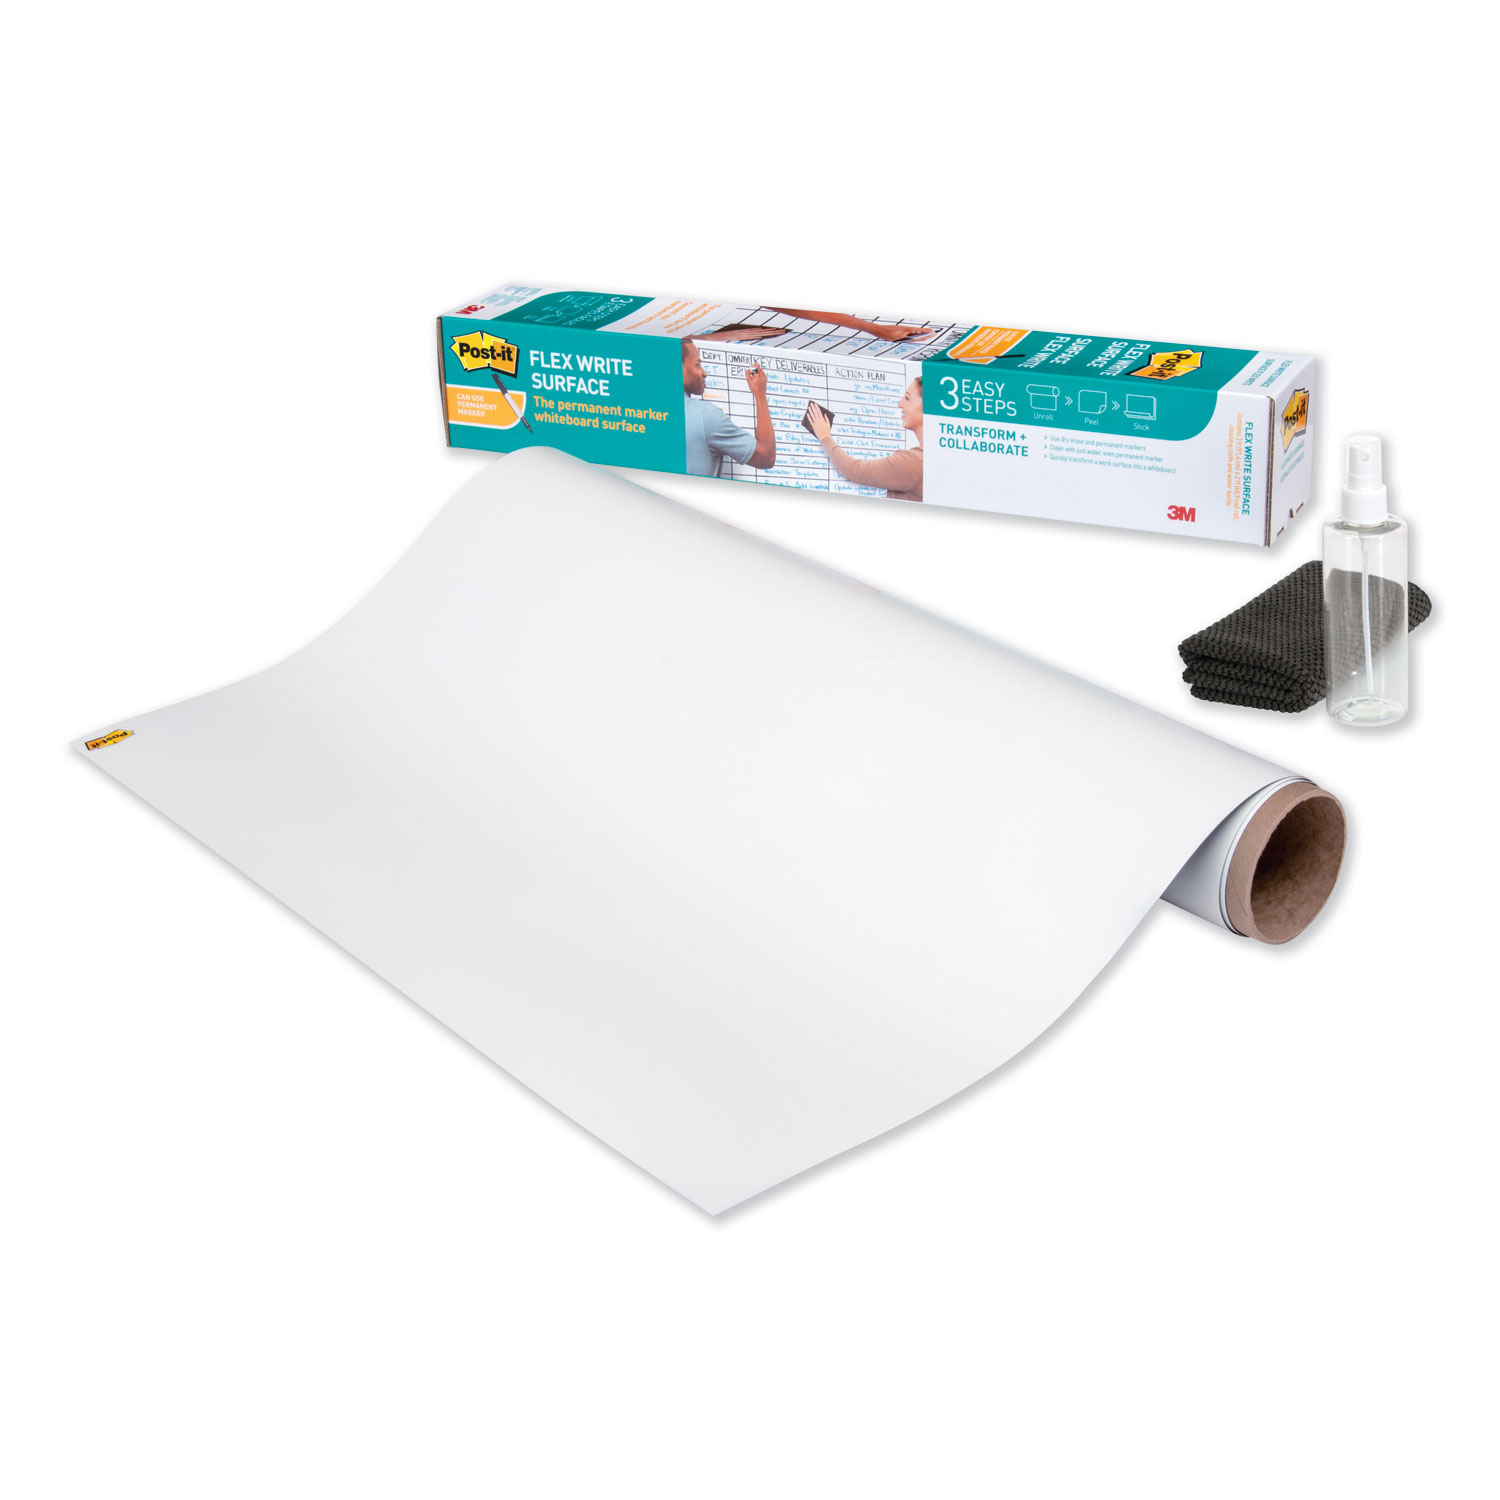 "Flex Write Surface, 72"" x 48"", White"